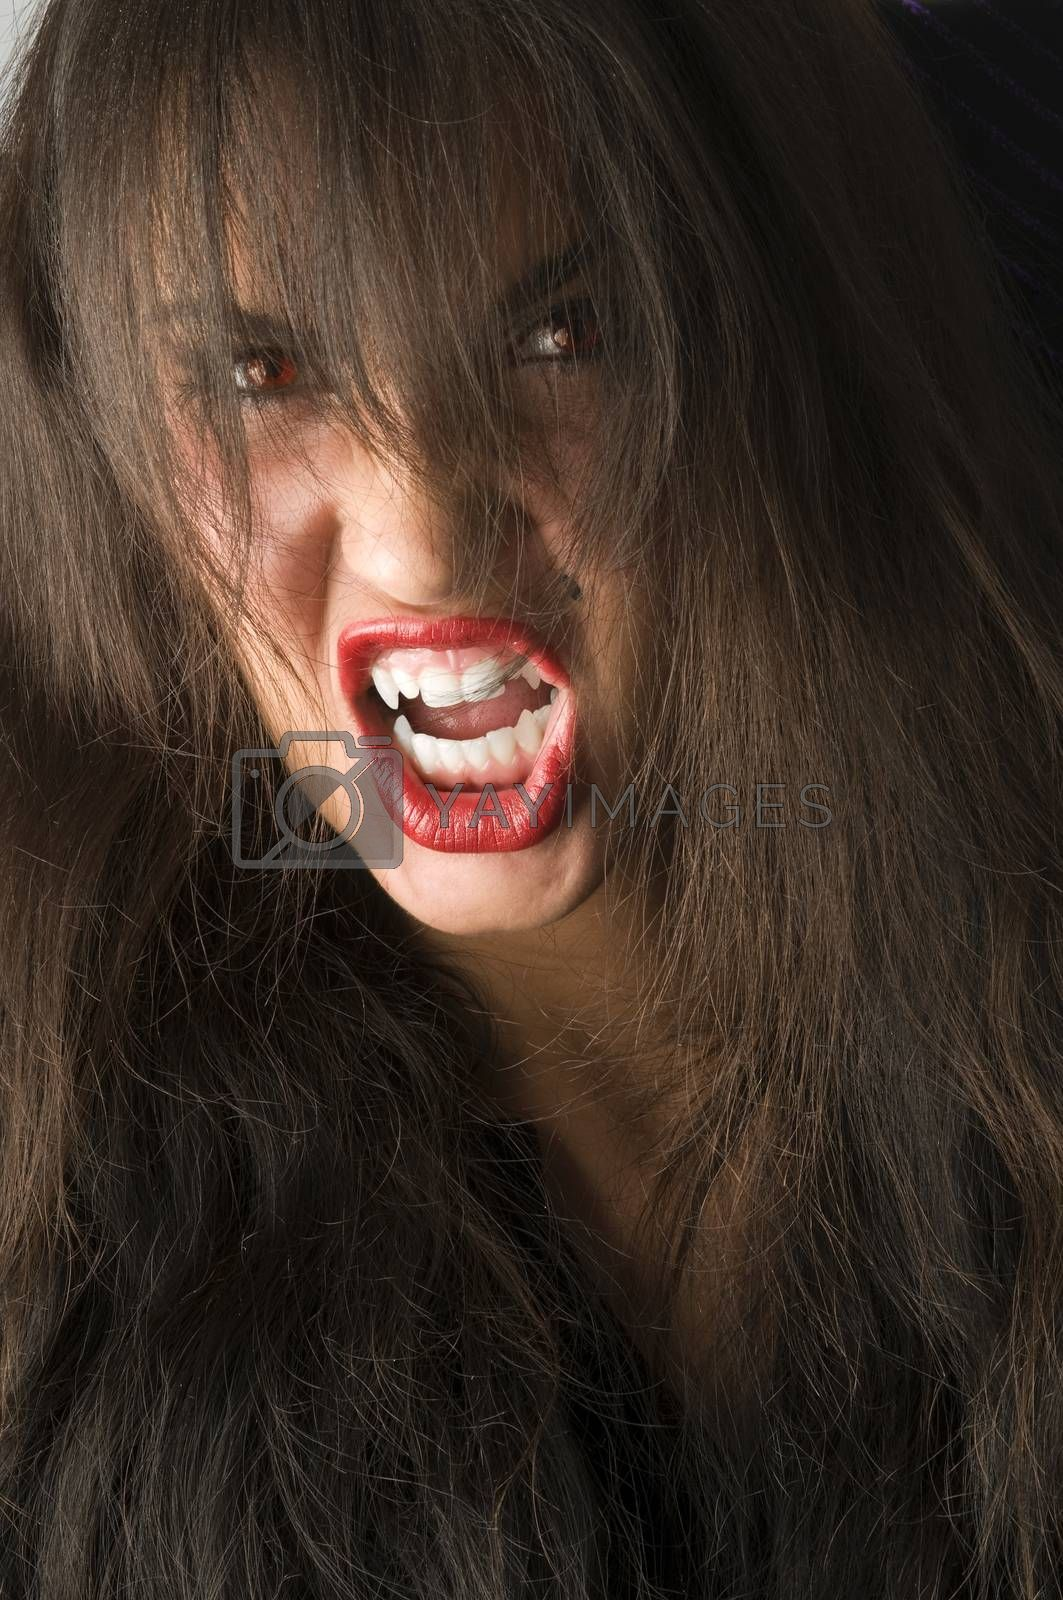 Royalty free image of vampire by fotoCD